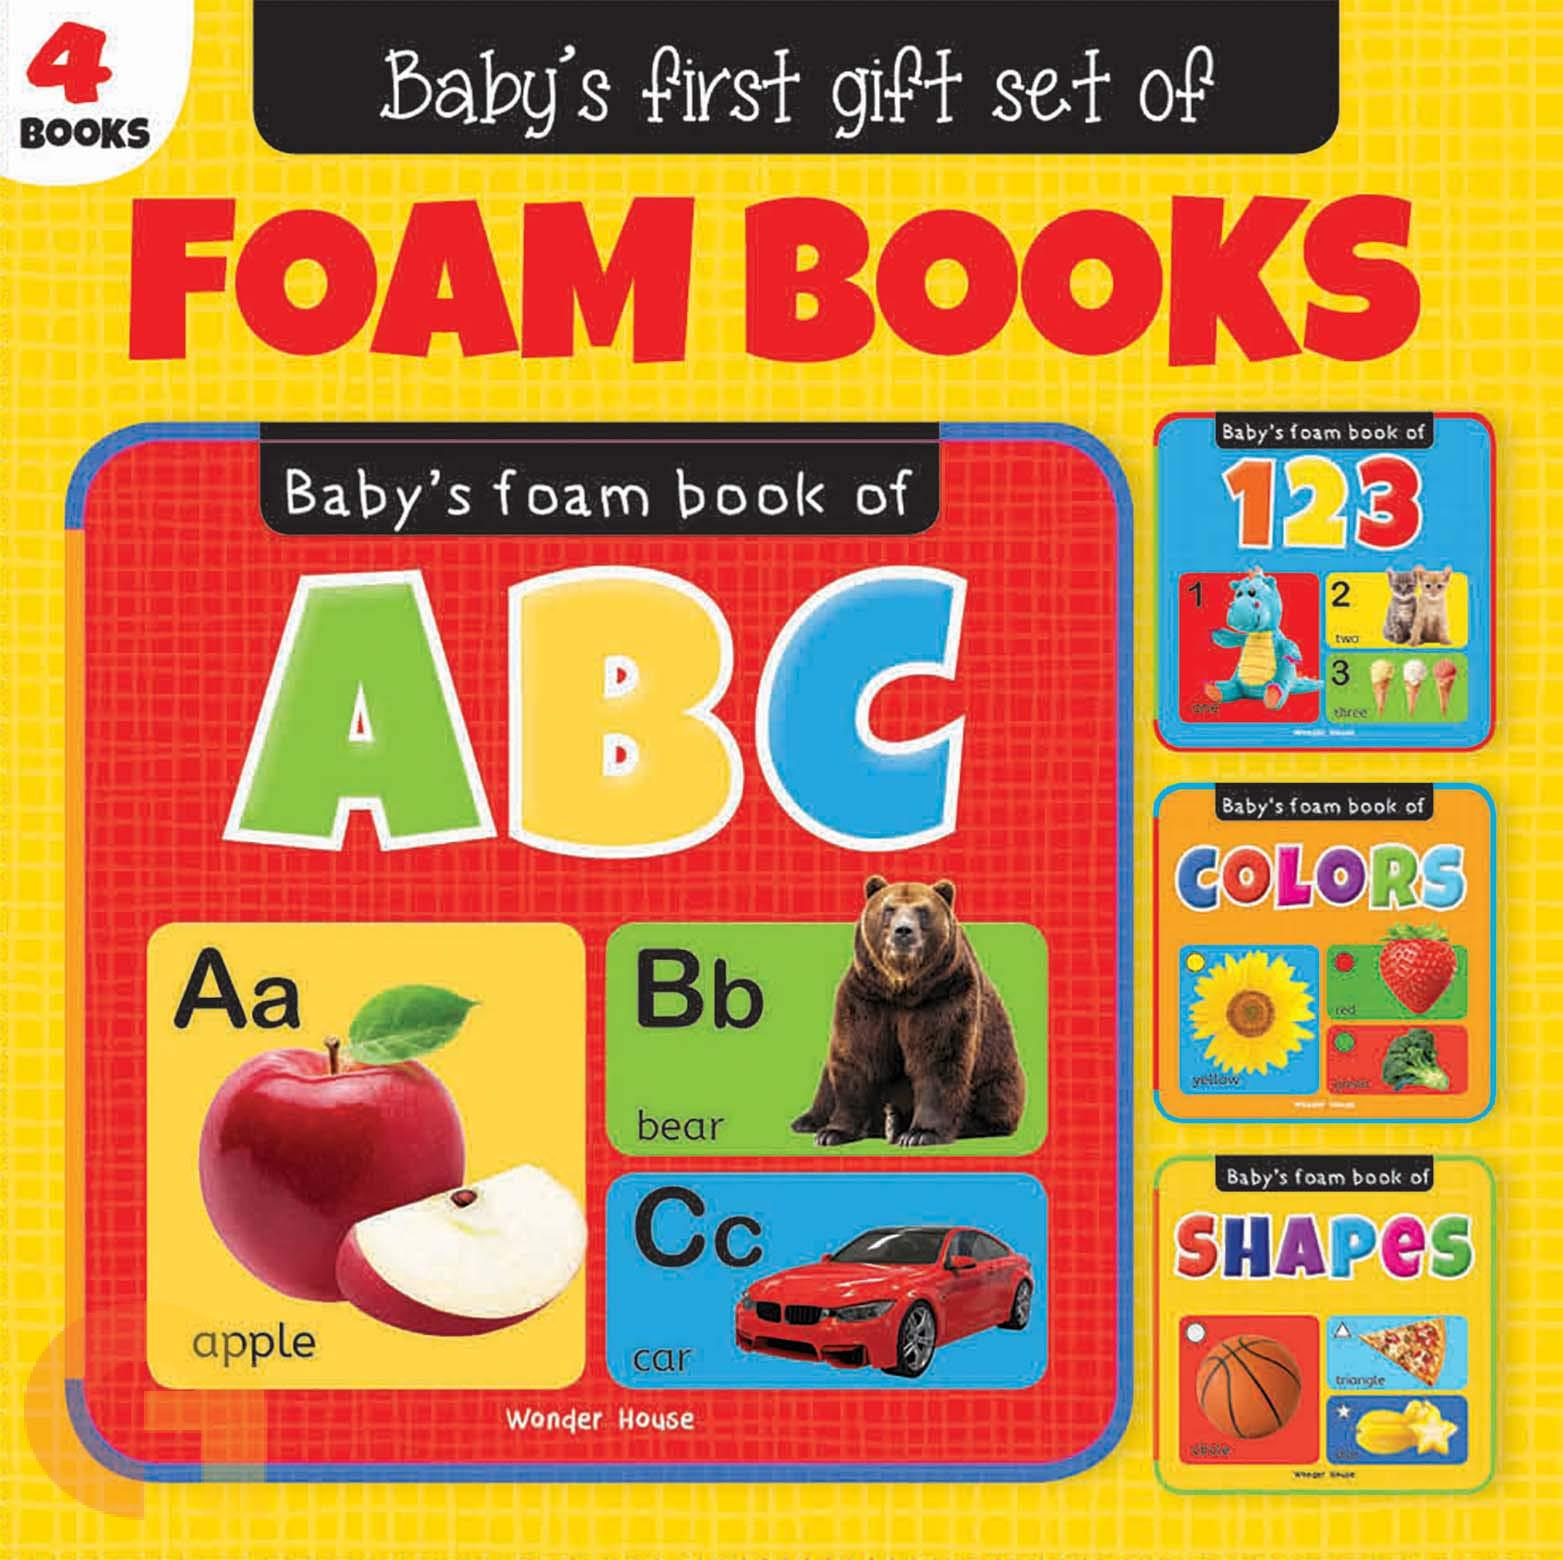 Babys First Gift Set of Foam Books